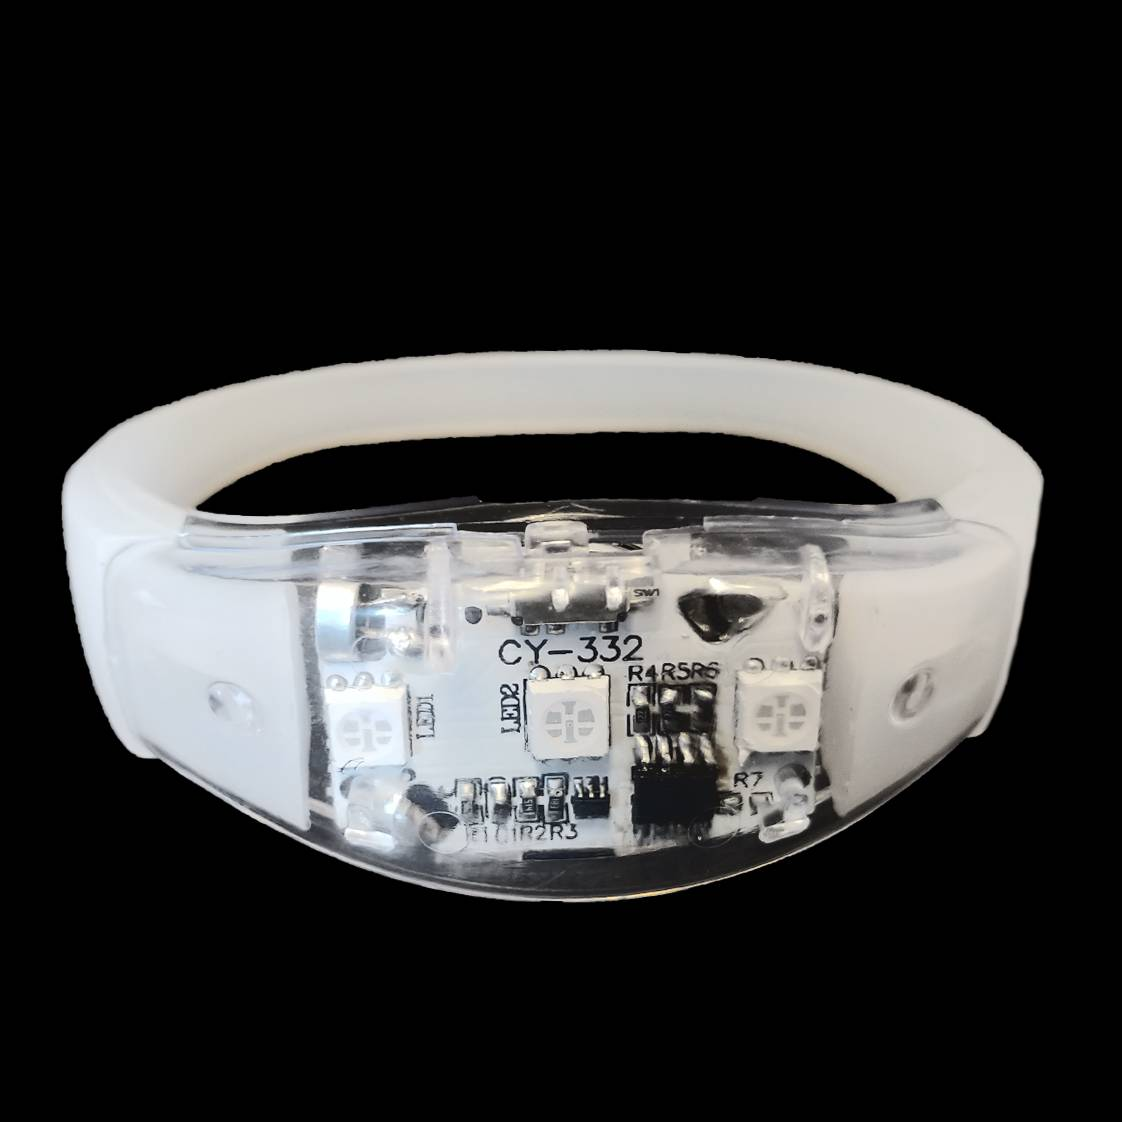 sound activated led armband op muziek